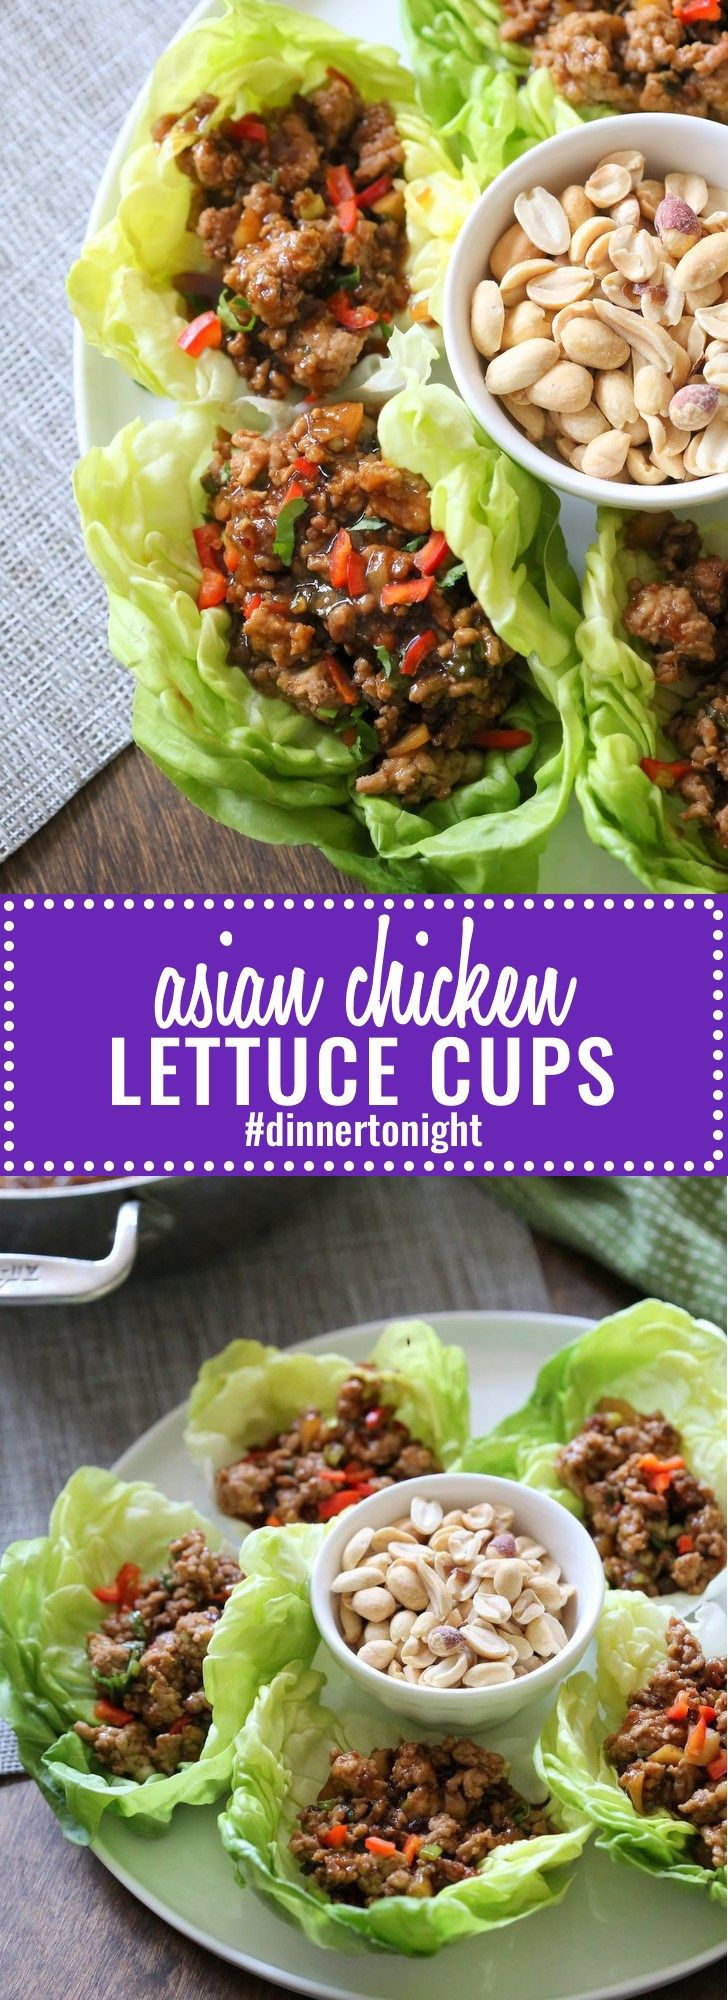 Asian Chicken Lettuce Cups- Super saucy chicken and vegetables in a tangy sweet sauce. Make ahead. Done in less than 30 minutes! #dinnertonight #lettucewraps